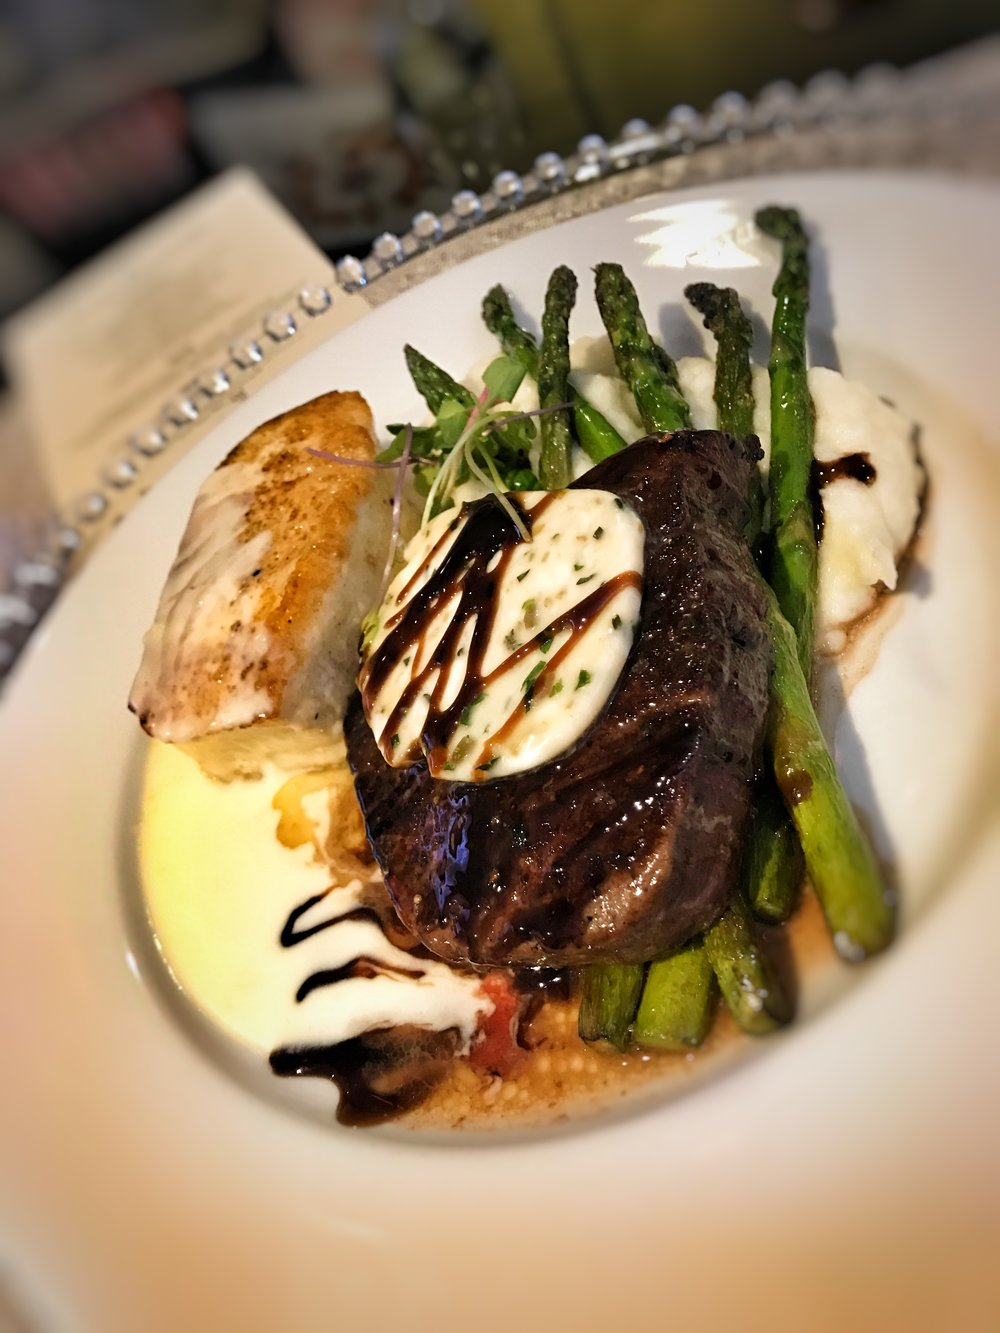 PEPPERCORN CRUSTED FILET MIGNON & PAN-SEARED ALASKAN HALIBUT